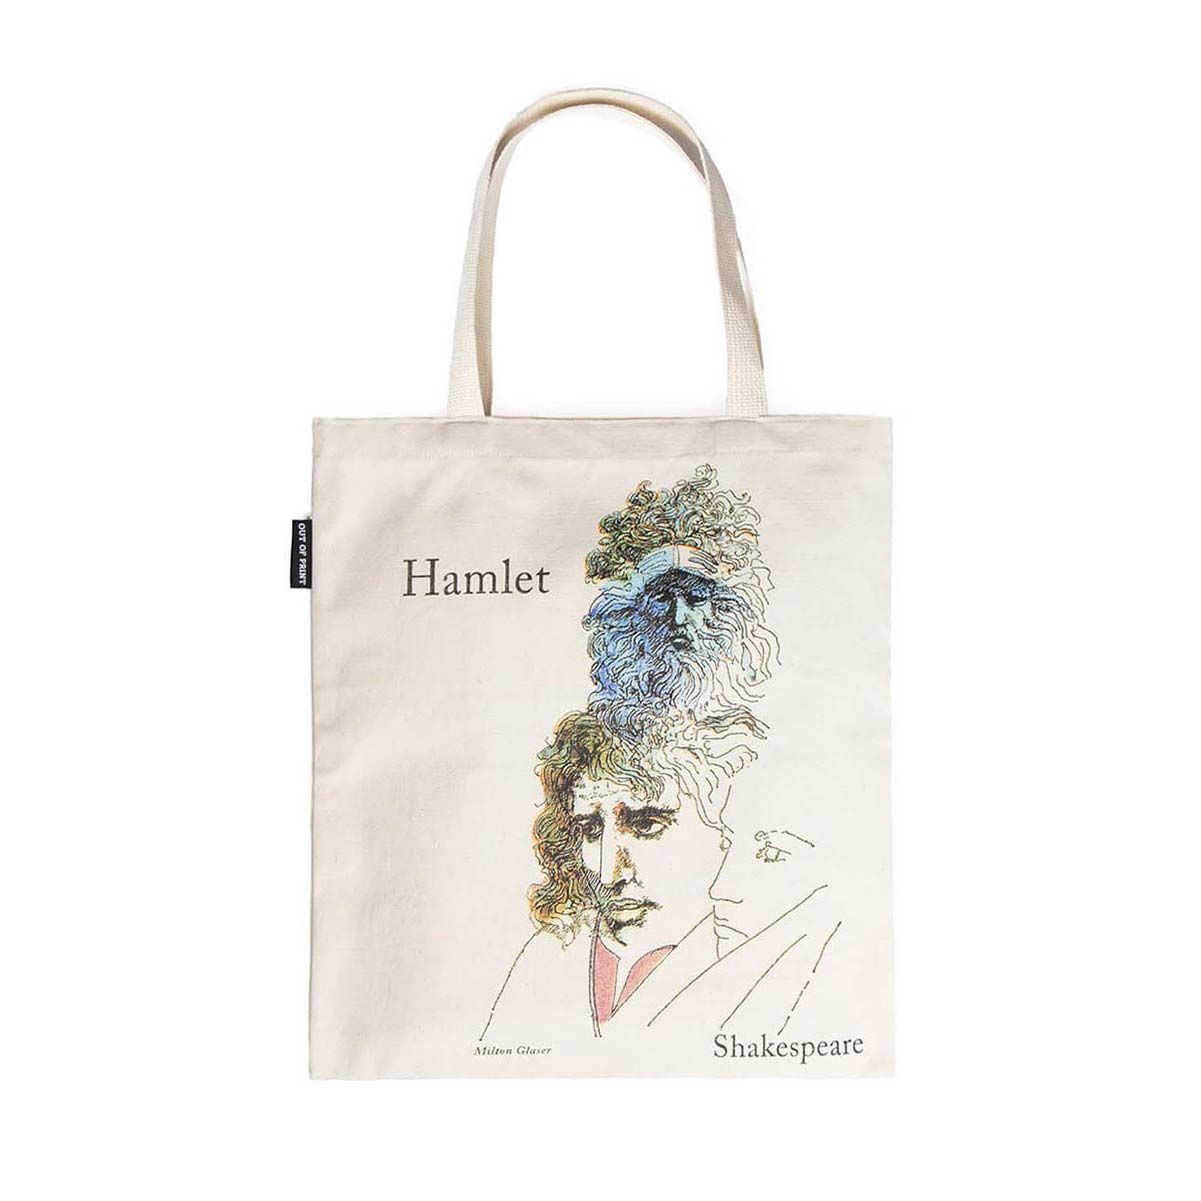 Tote Bag - William Shakespeare - Hamlet and The Tempest